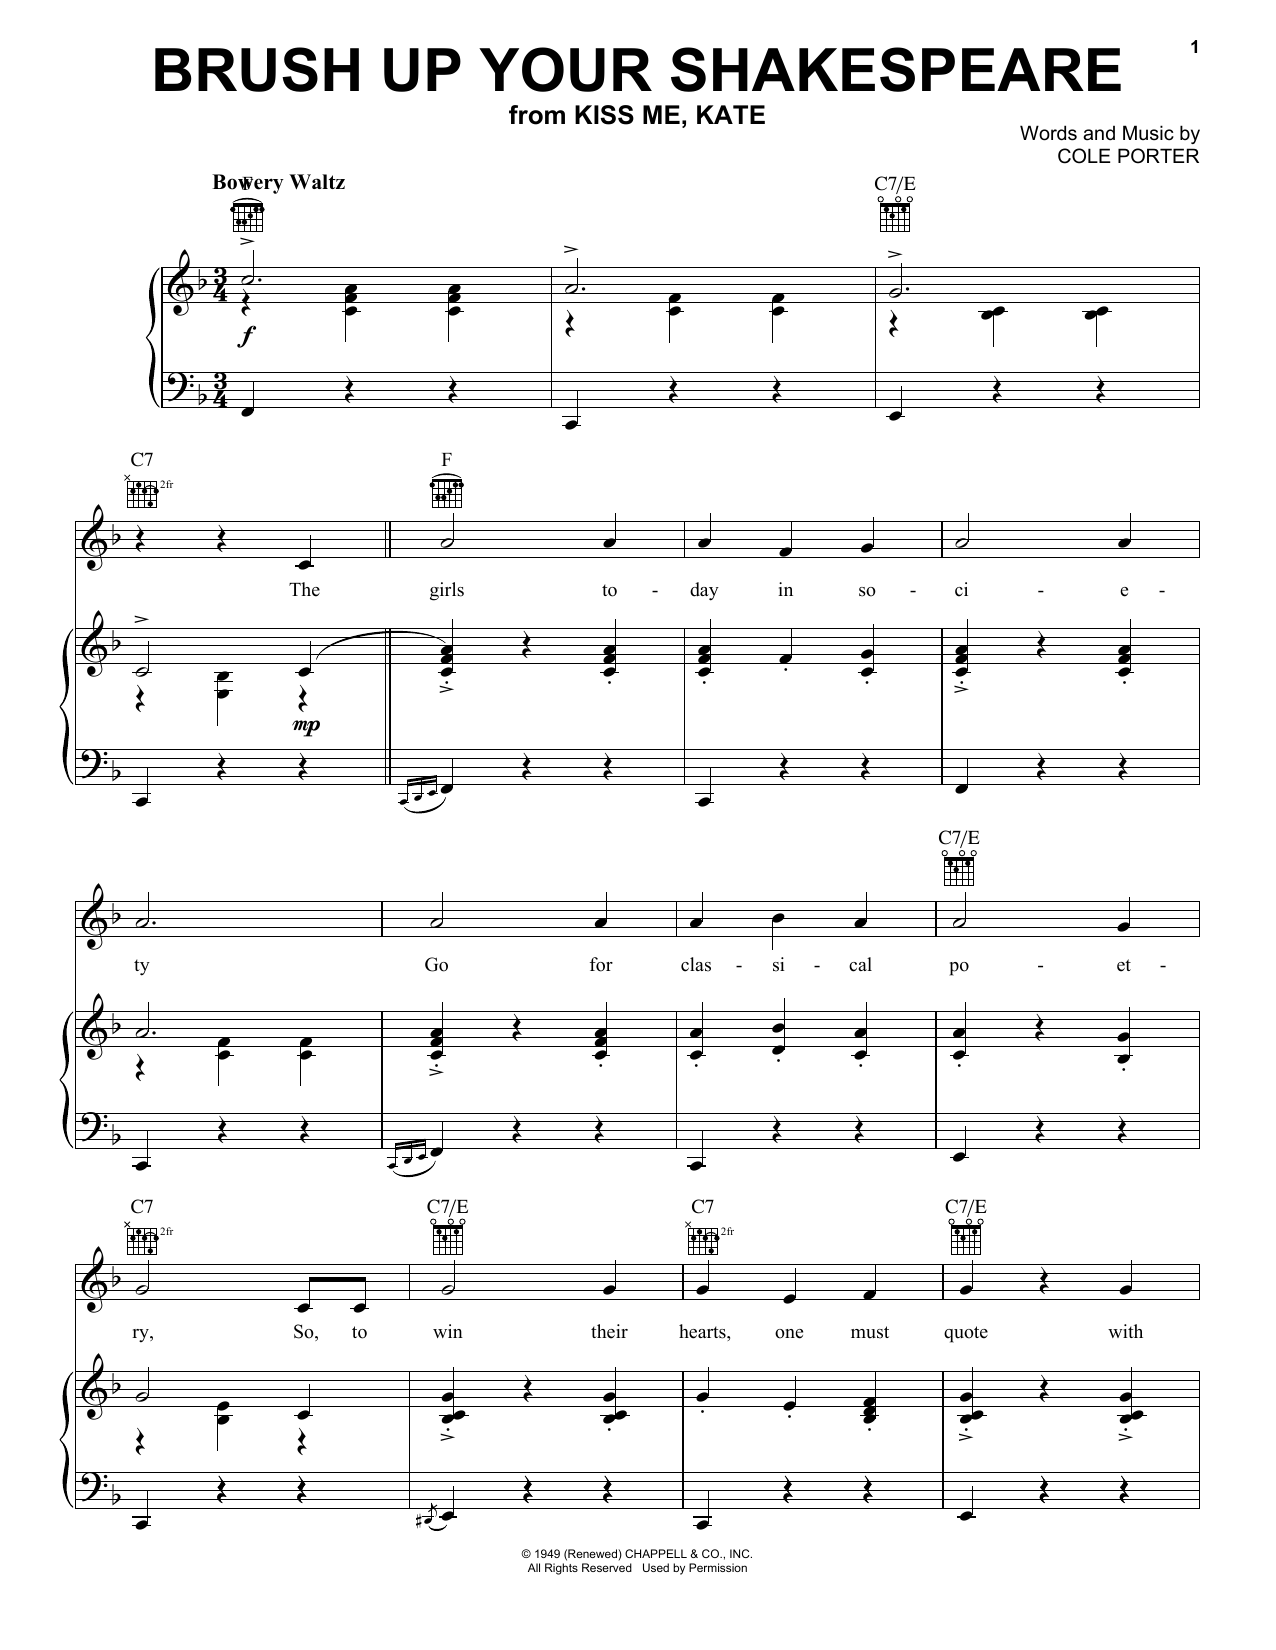 Brush Up Your Shakespeare (from Kiss Me, Kate) (Piano, Vocal & Guitar (Right-Hand Melody))